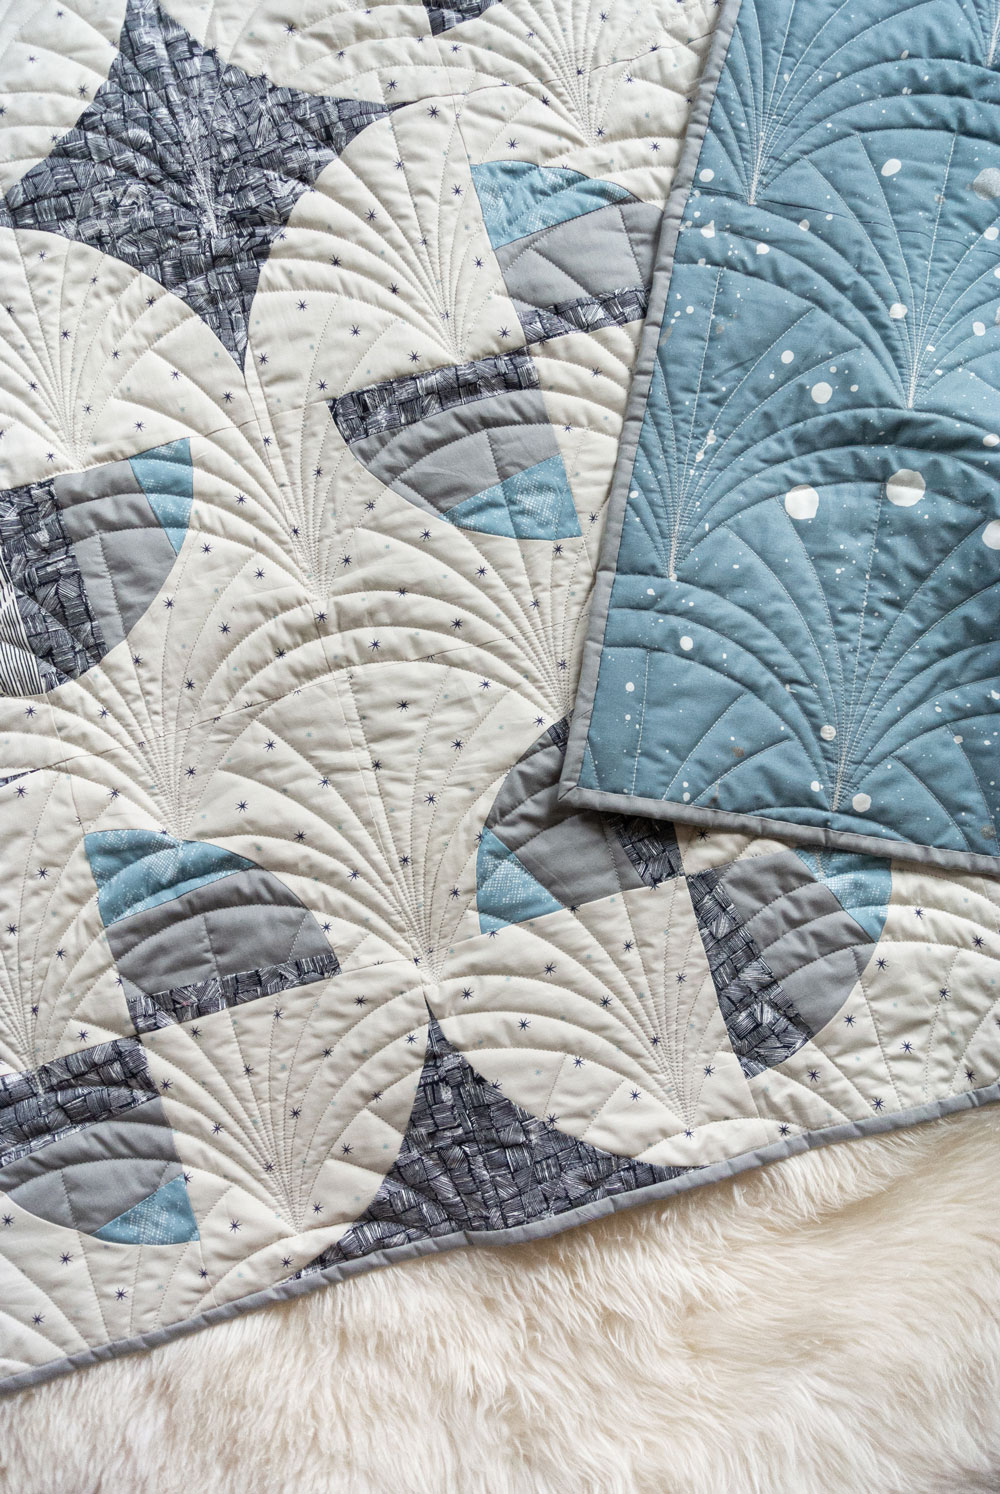 This Great Gatsby inspired Modern Fans quilt kit uses icy blues, grays and metallic silver fabric to bring elegance and pizzazz to a cozy quilt. suzyquilts.com #quiltpattern #artdecoquilt